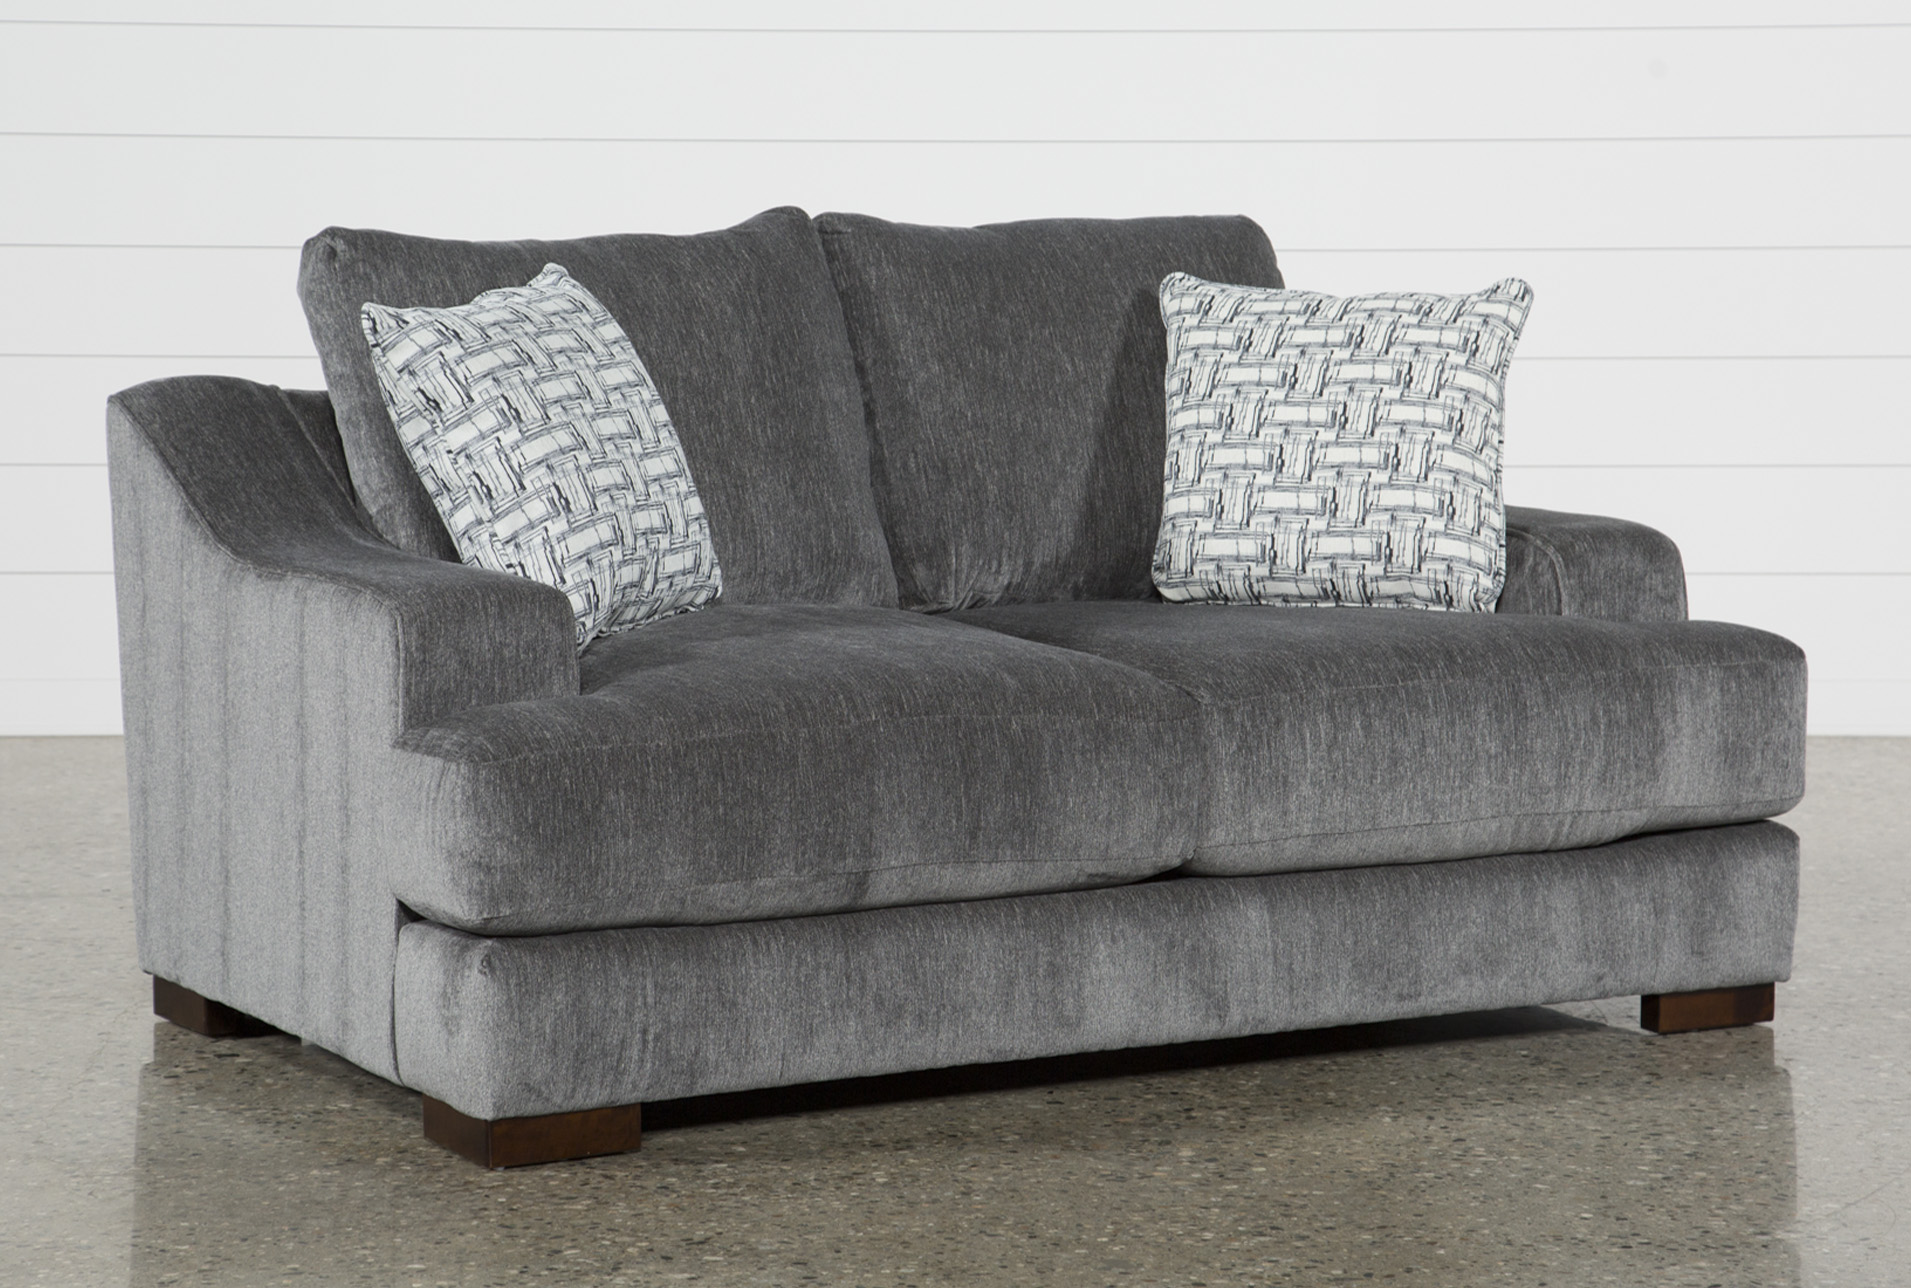 Maddox Loveseat (Qty: 1) Has Been Successfully Added To Your Cart.